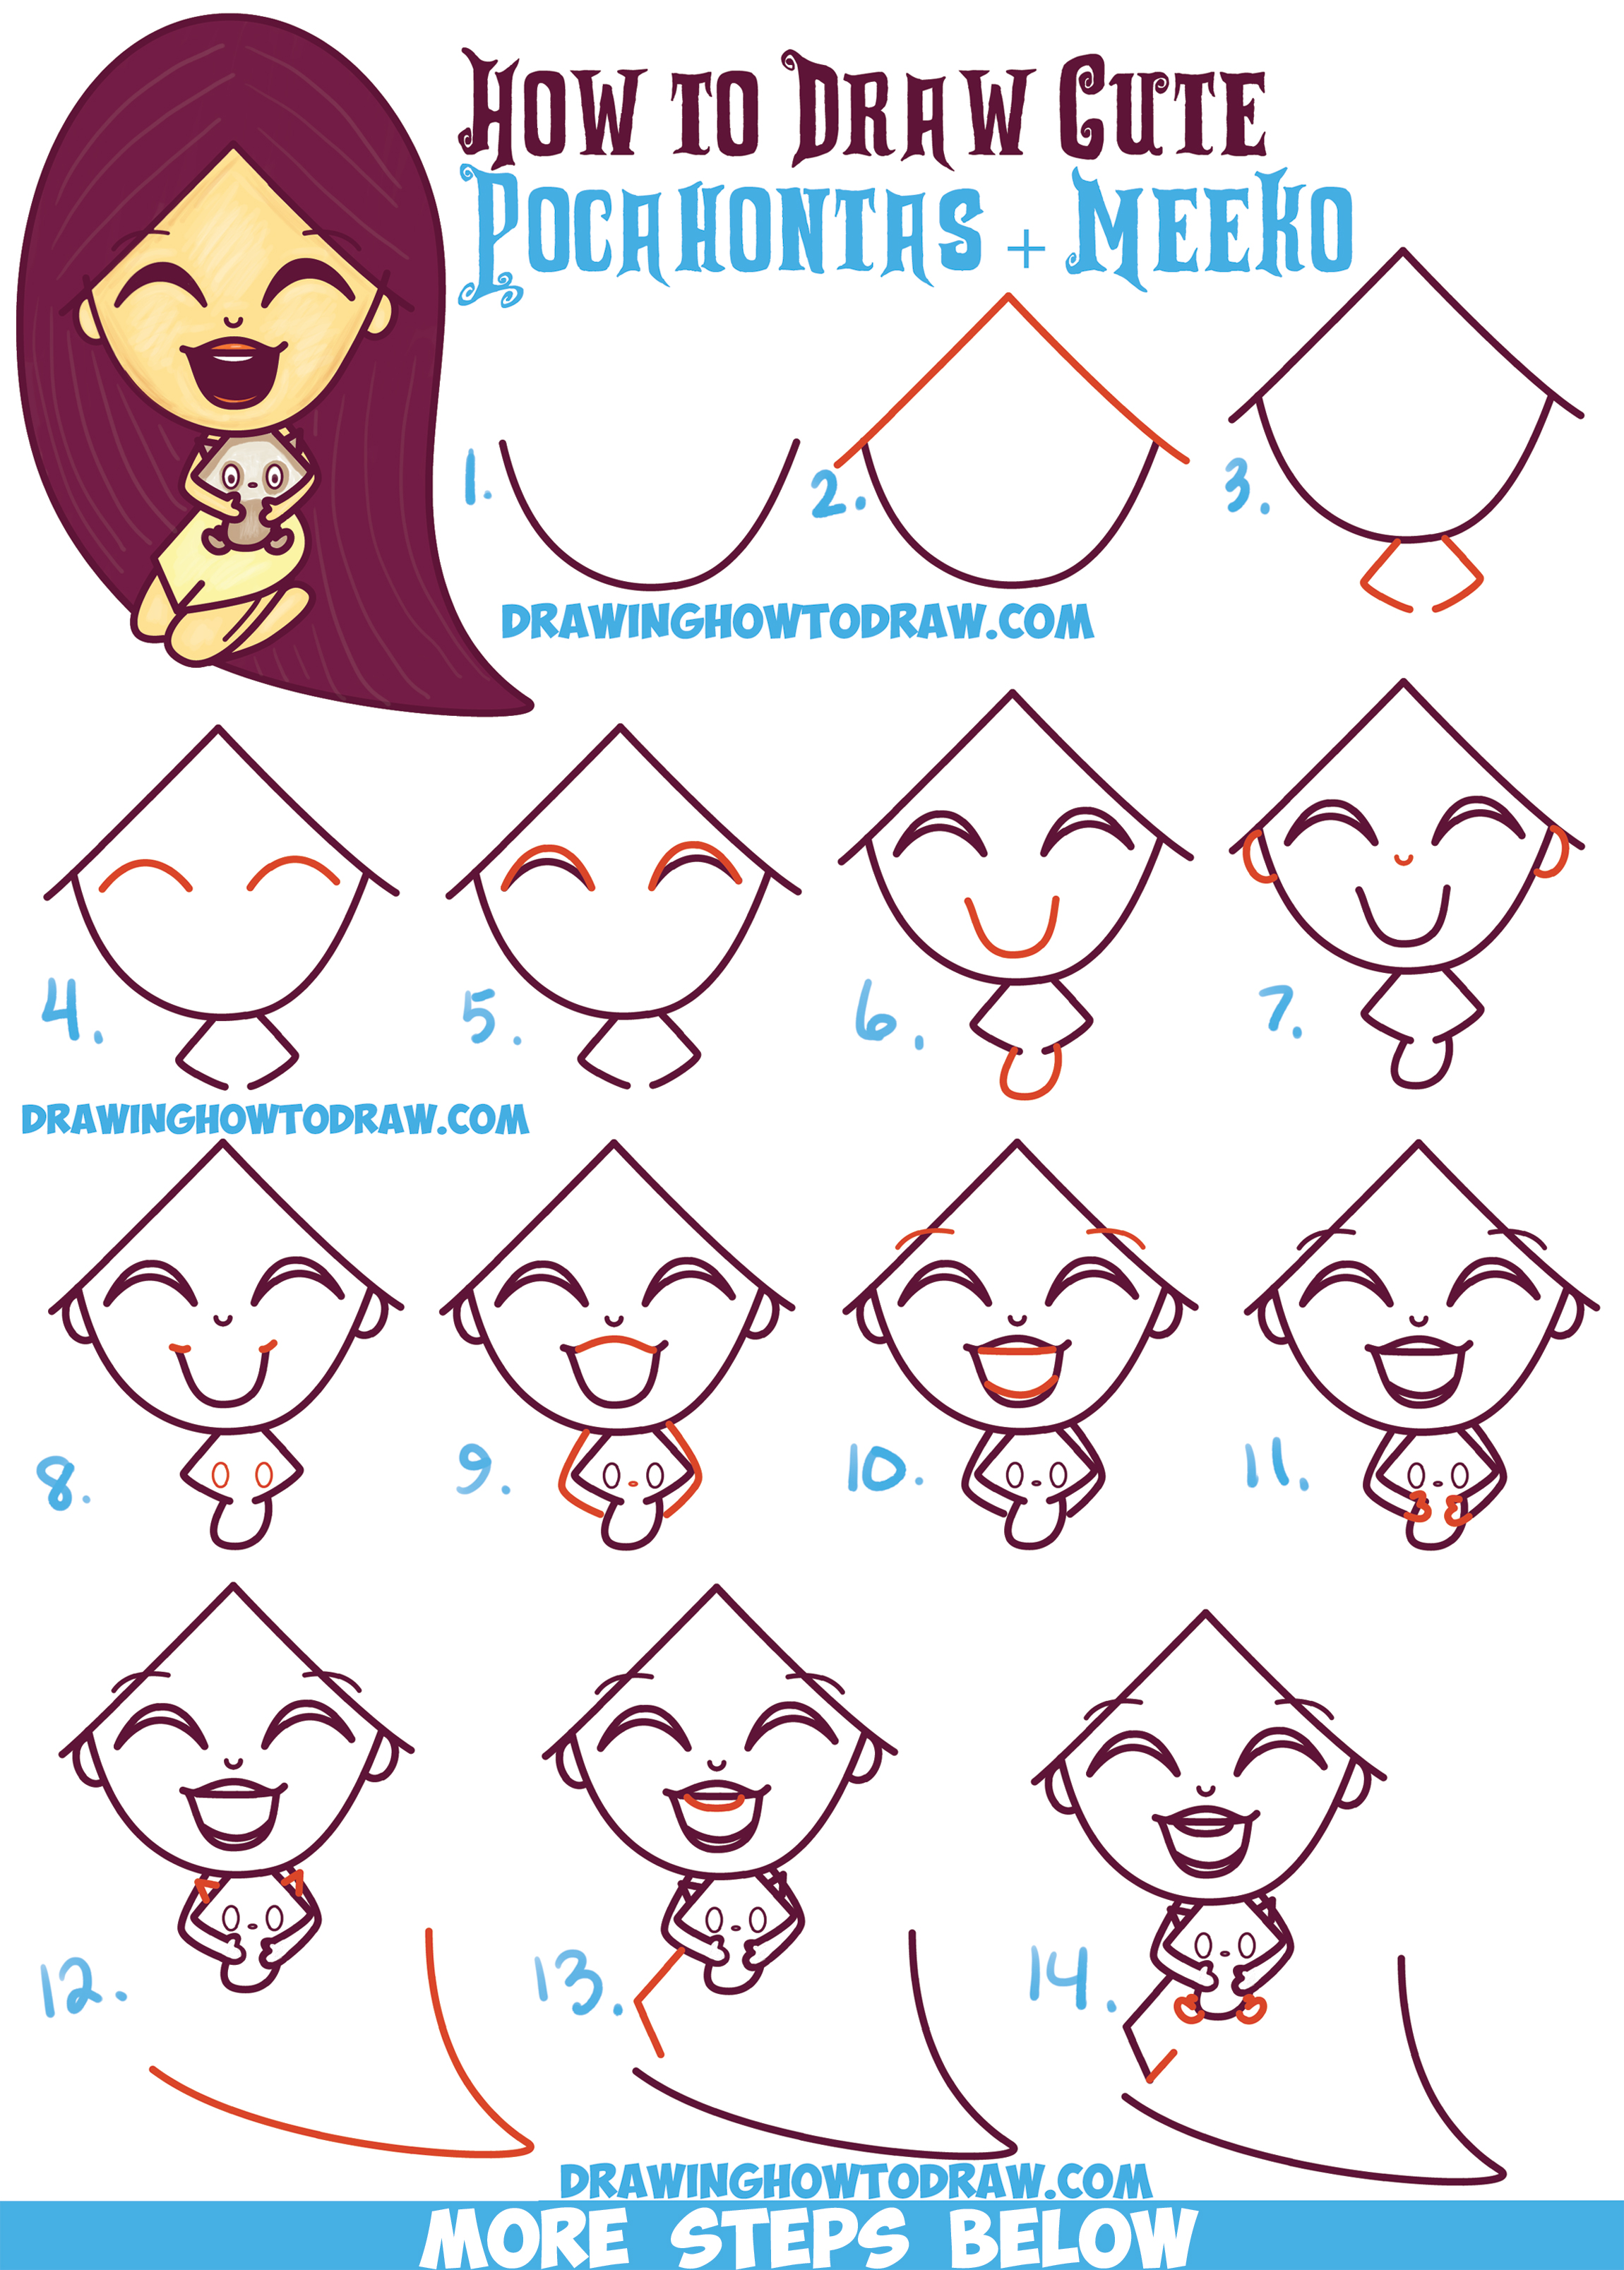 How to draw a cute kawaii chibi pocahontas and meeko for Drawing ideas for beginners step by step